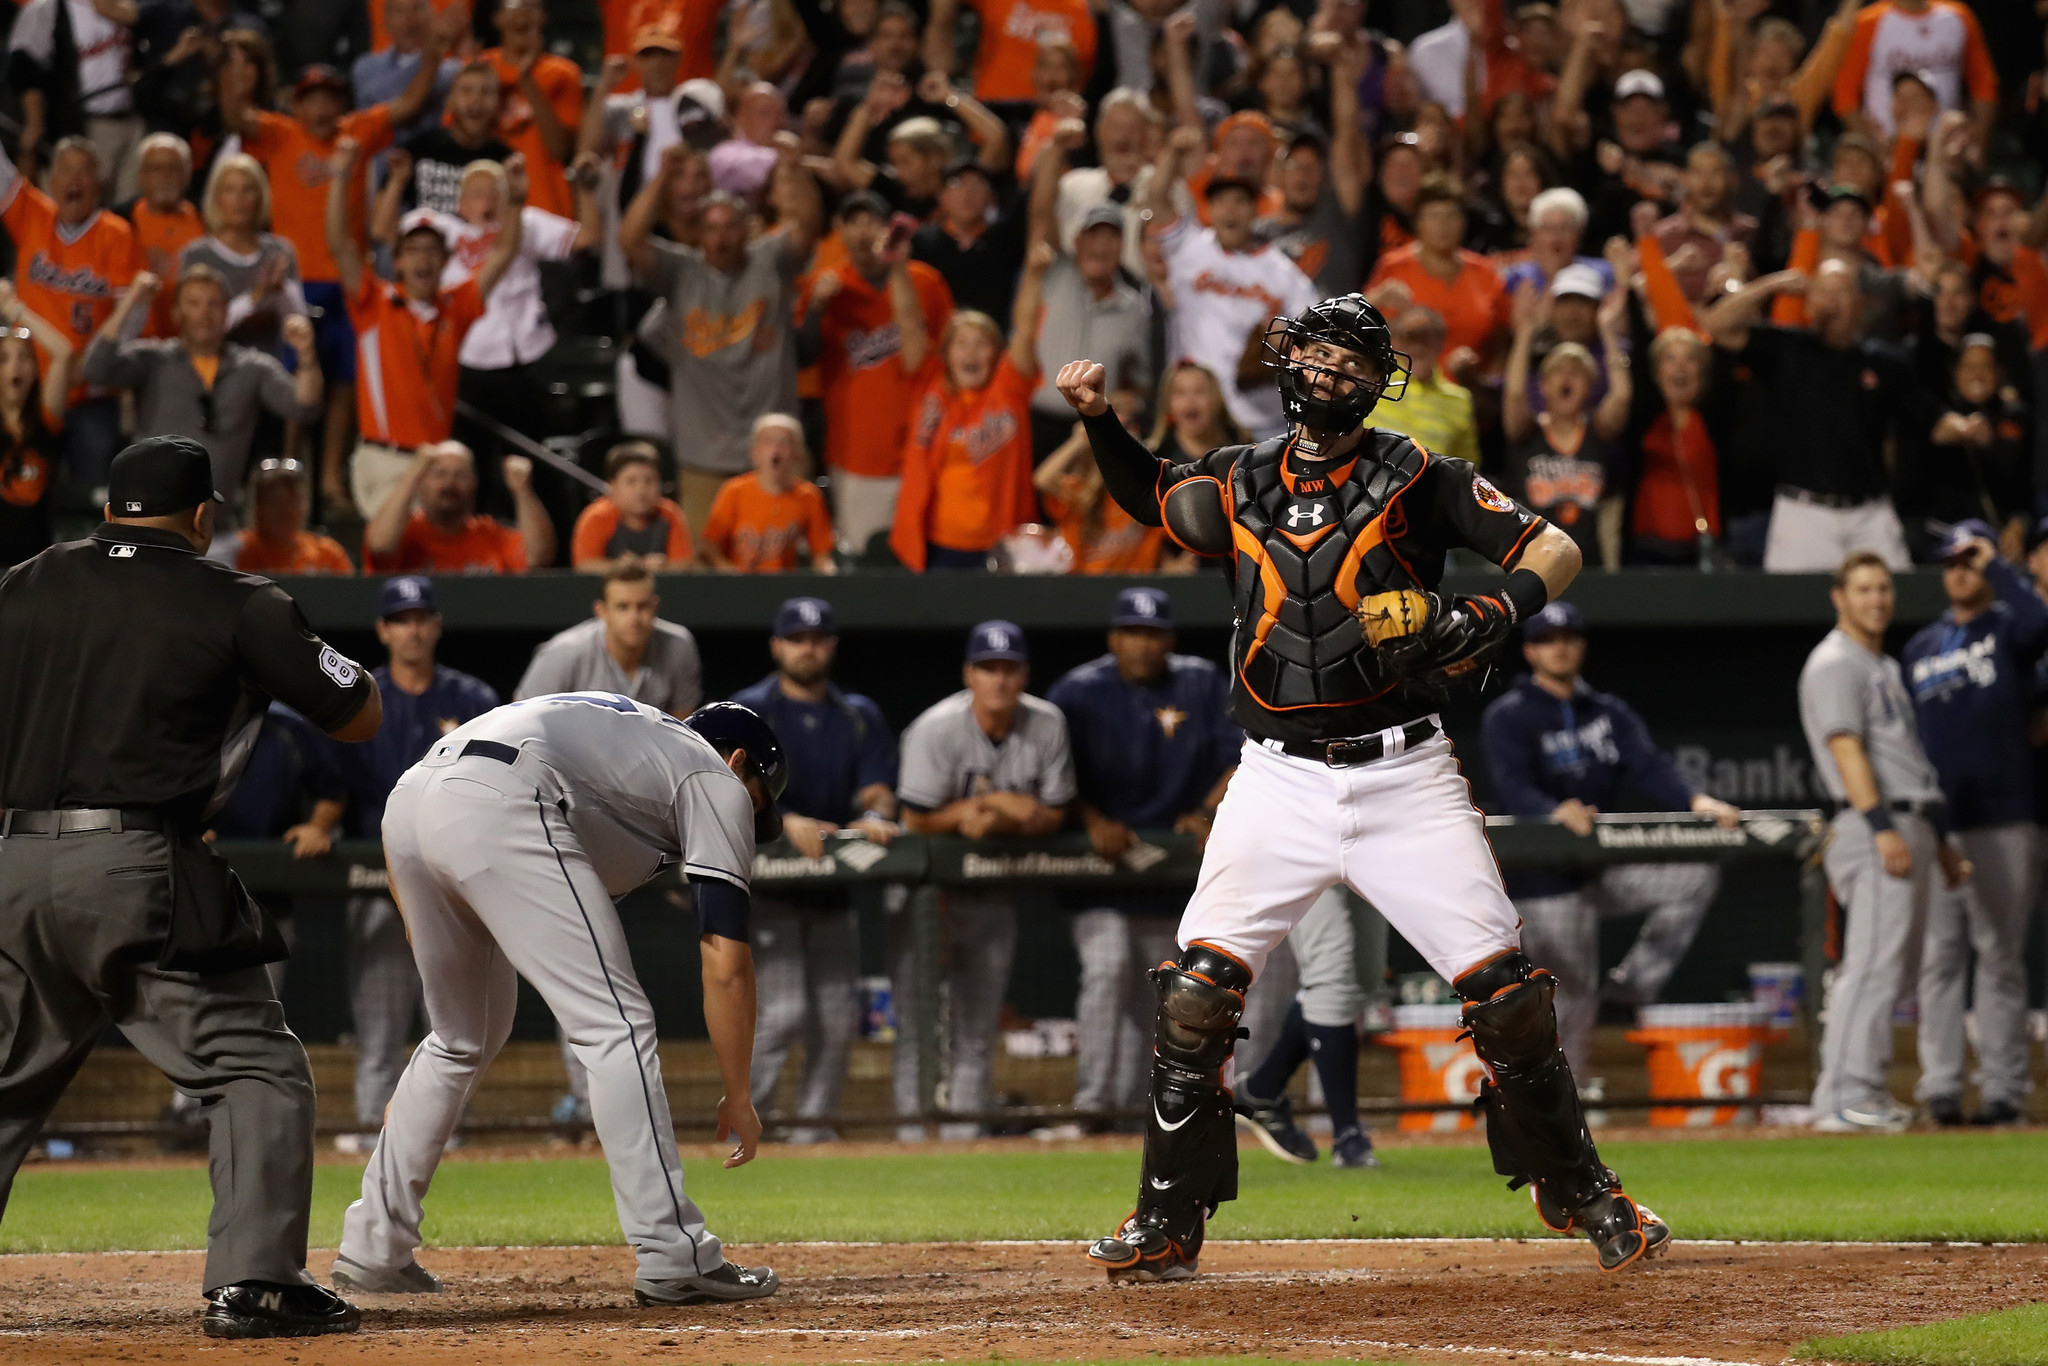 Bal-orioles-ride-the-details-on-basepaths-in-field-during-comeback-win-over-tampa-bay-20160916